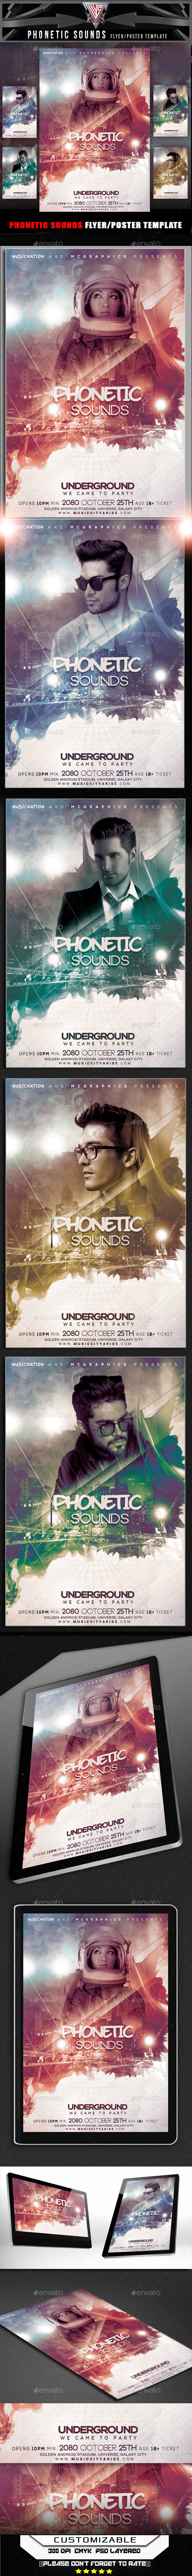 Phonetic Sounds Flyer Template - Flyers Print Templates